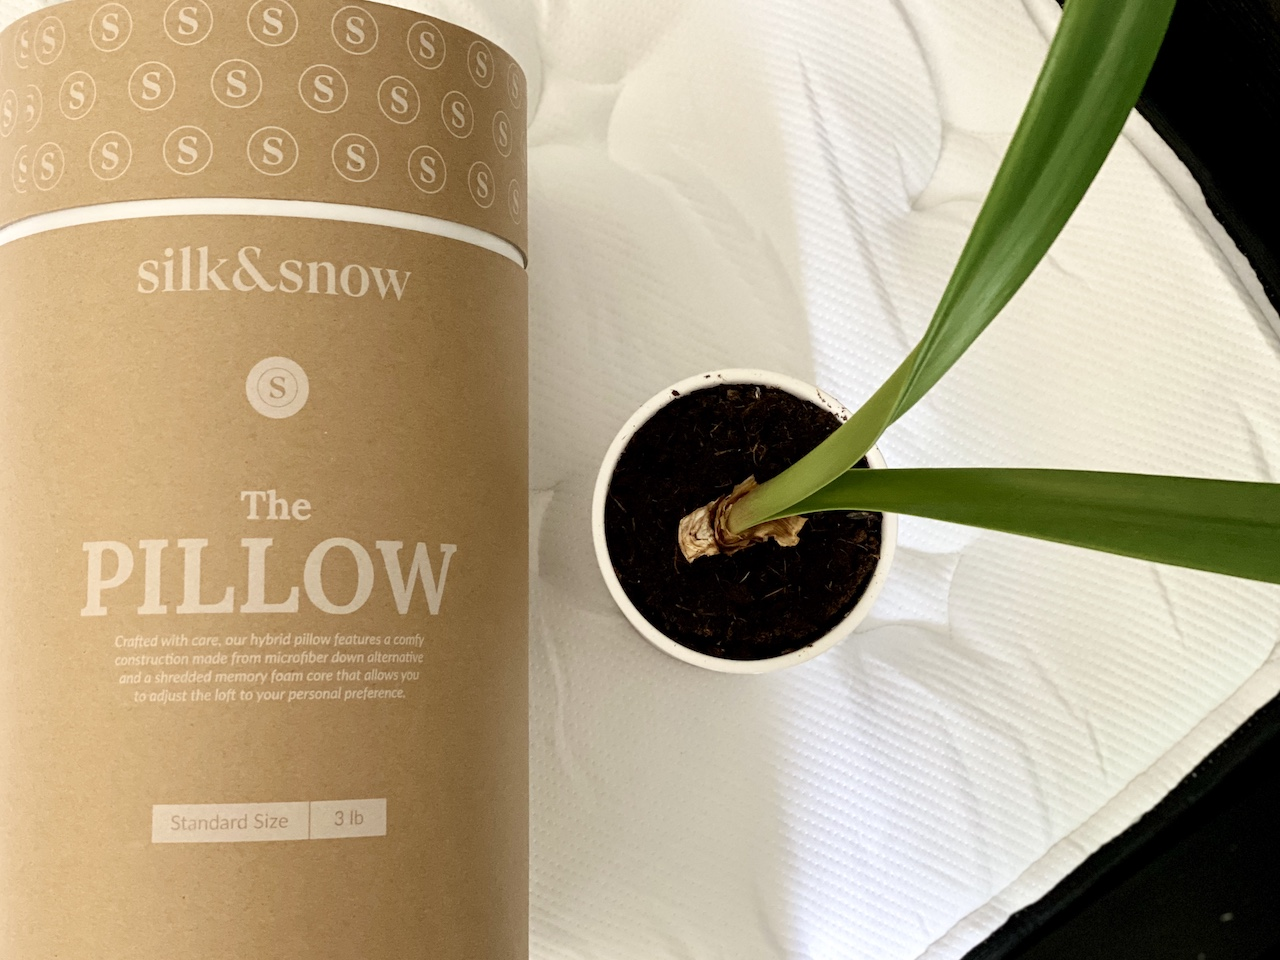 Silk & Snow Hybrid Pillow Review